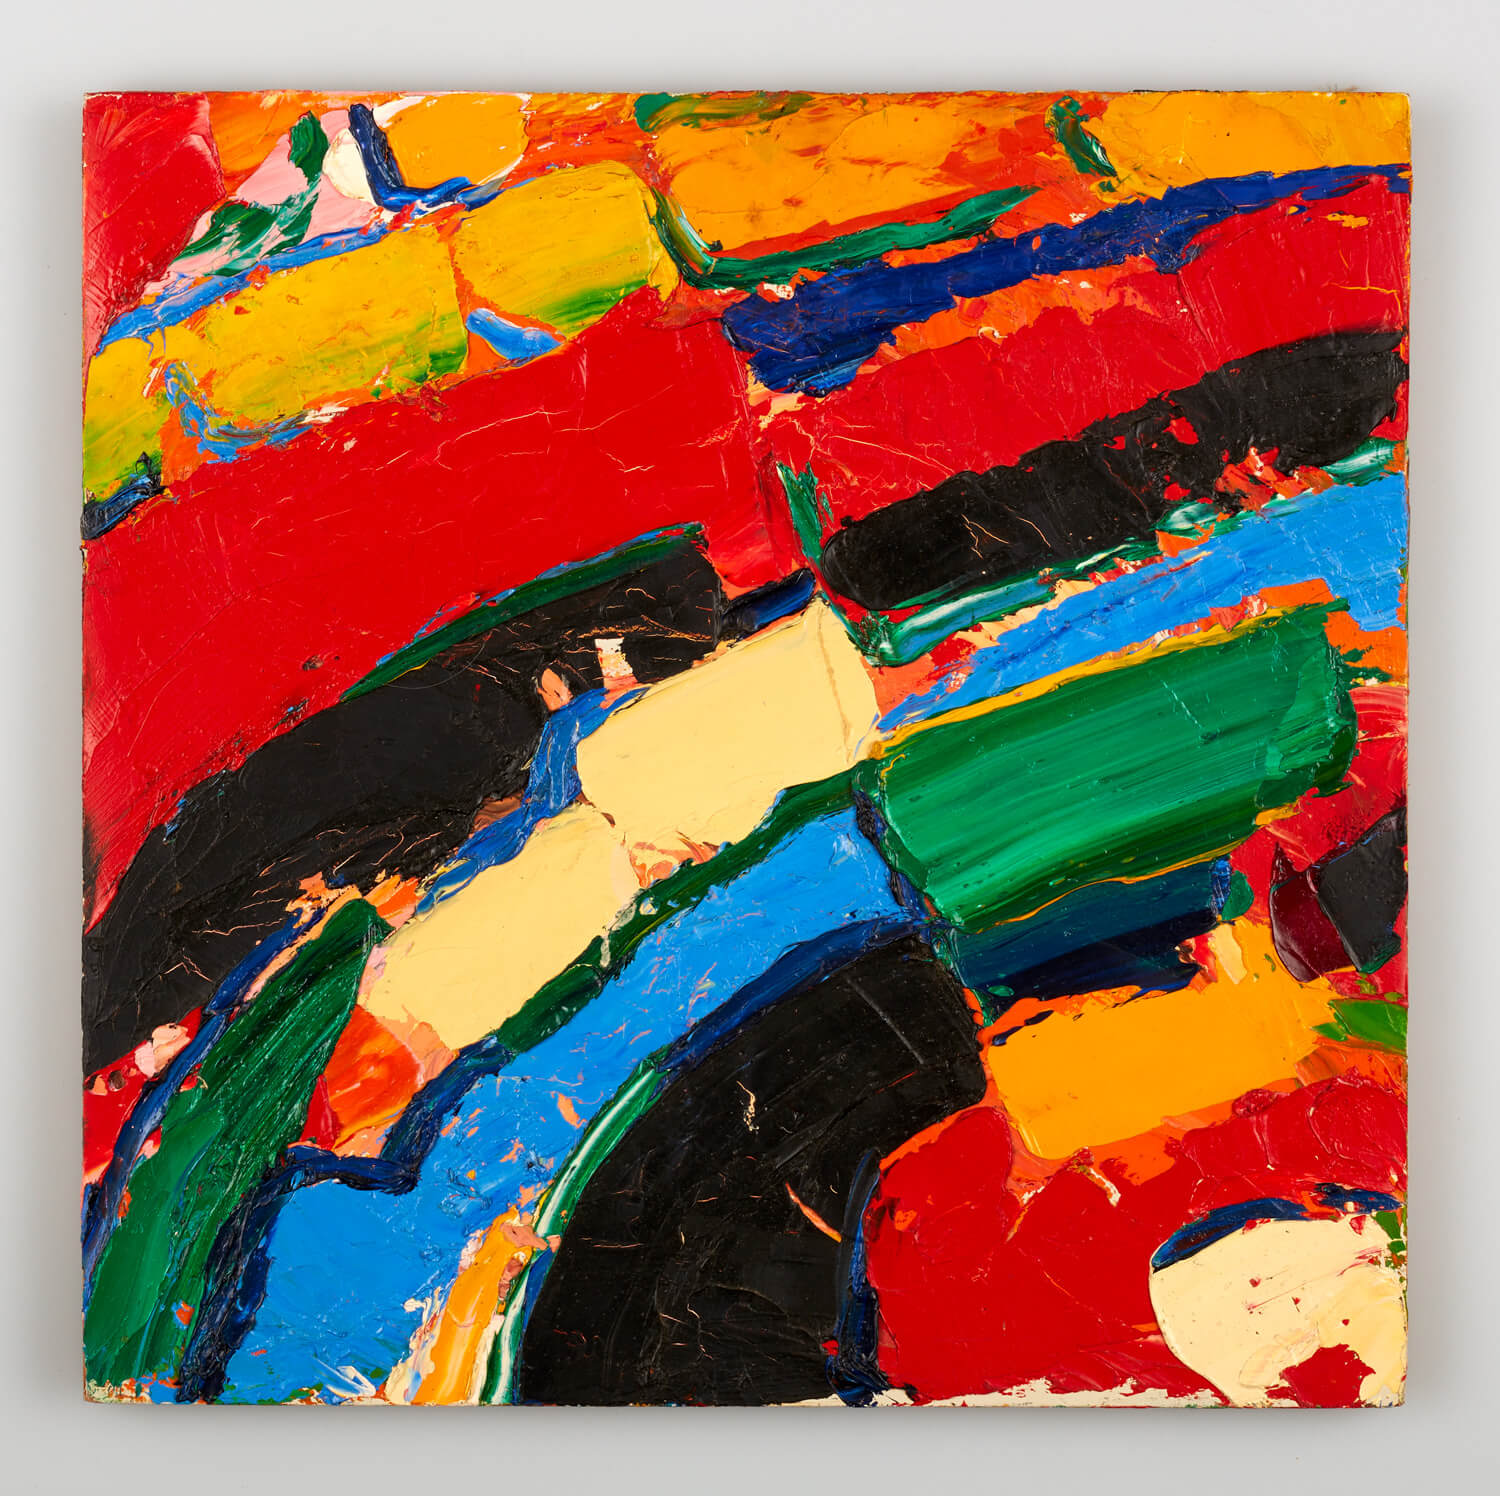 JB196 - Abstract - 1994 - 35.5 x 36 cm - Oil on panel